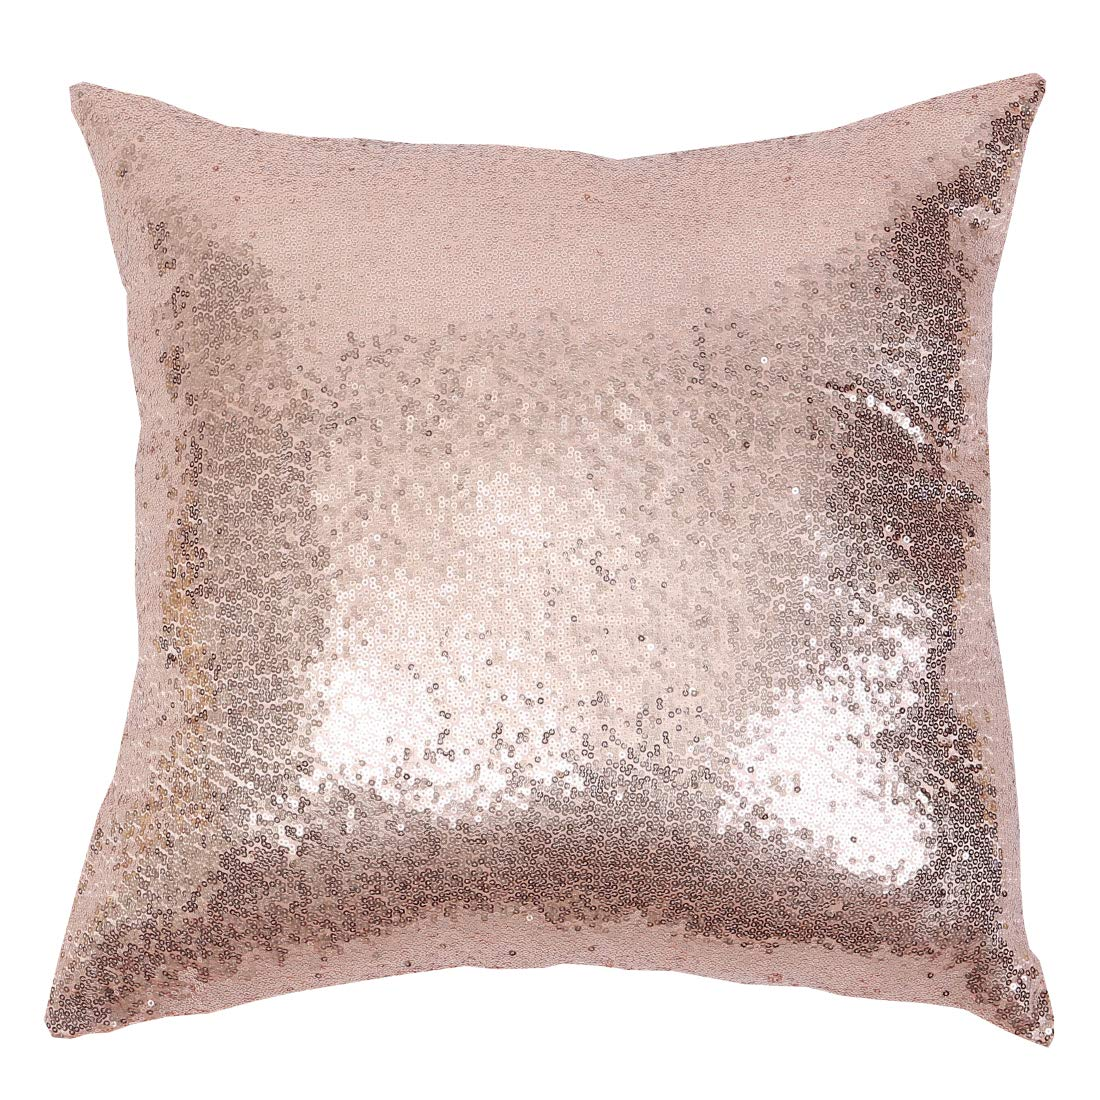 Poise3EHome 18x18inches Sequin Pillow Covers Satin Decorative Pillowcases for Throw Pillows, Couch, Bed, Outdoor, Christmas (Rose Gold, 2PCS)